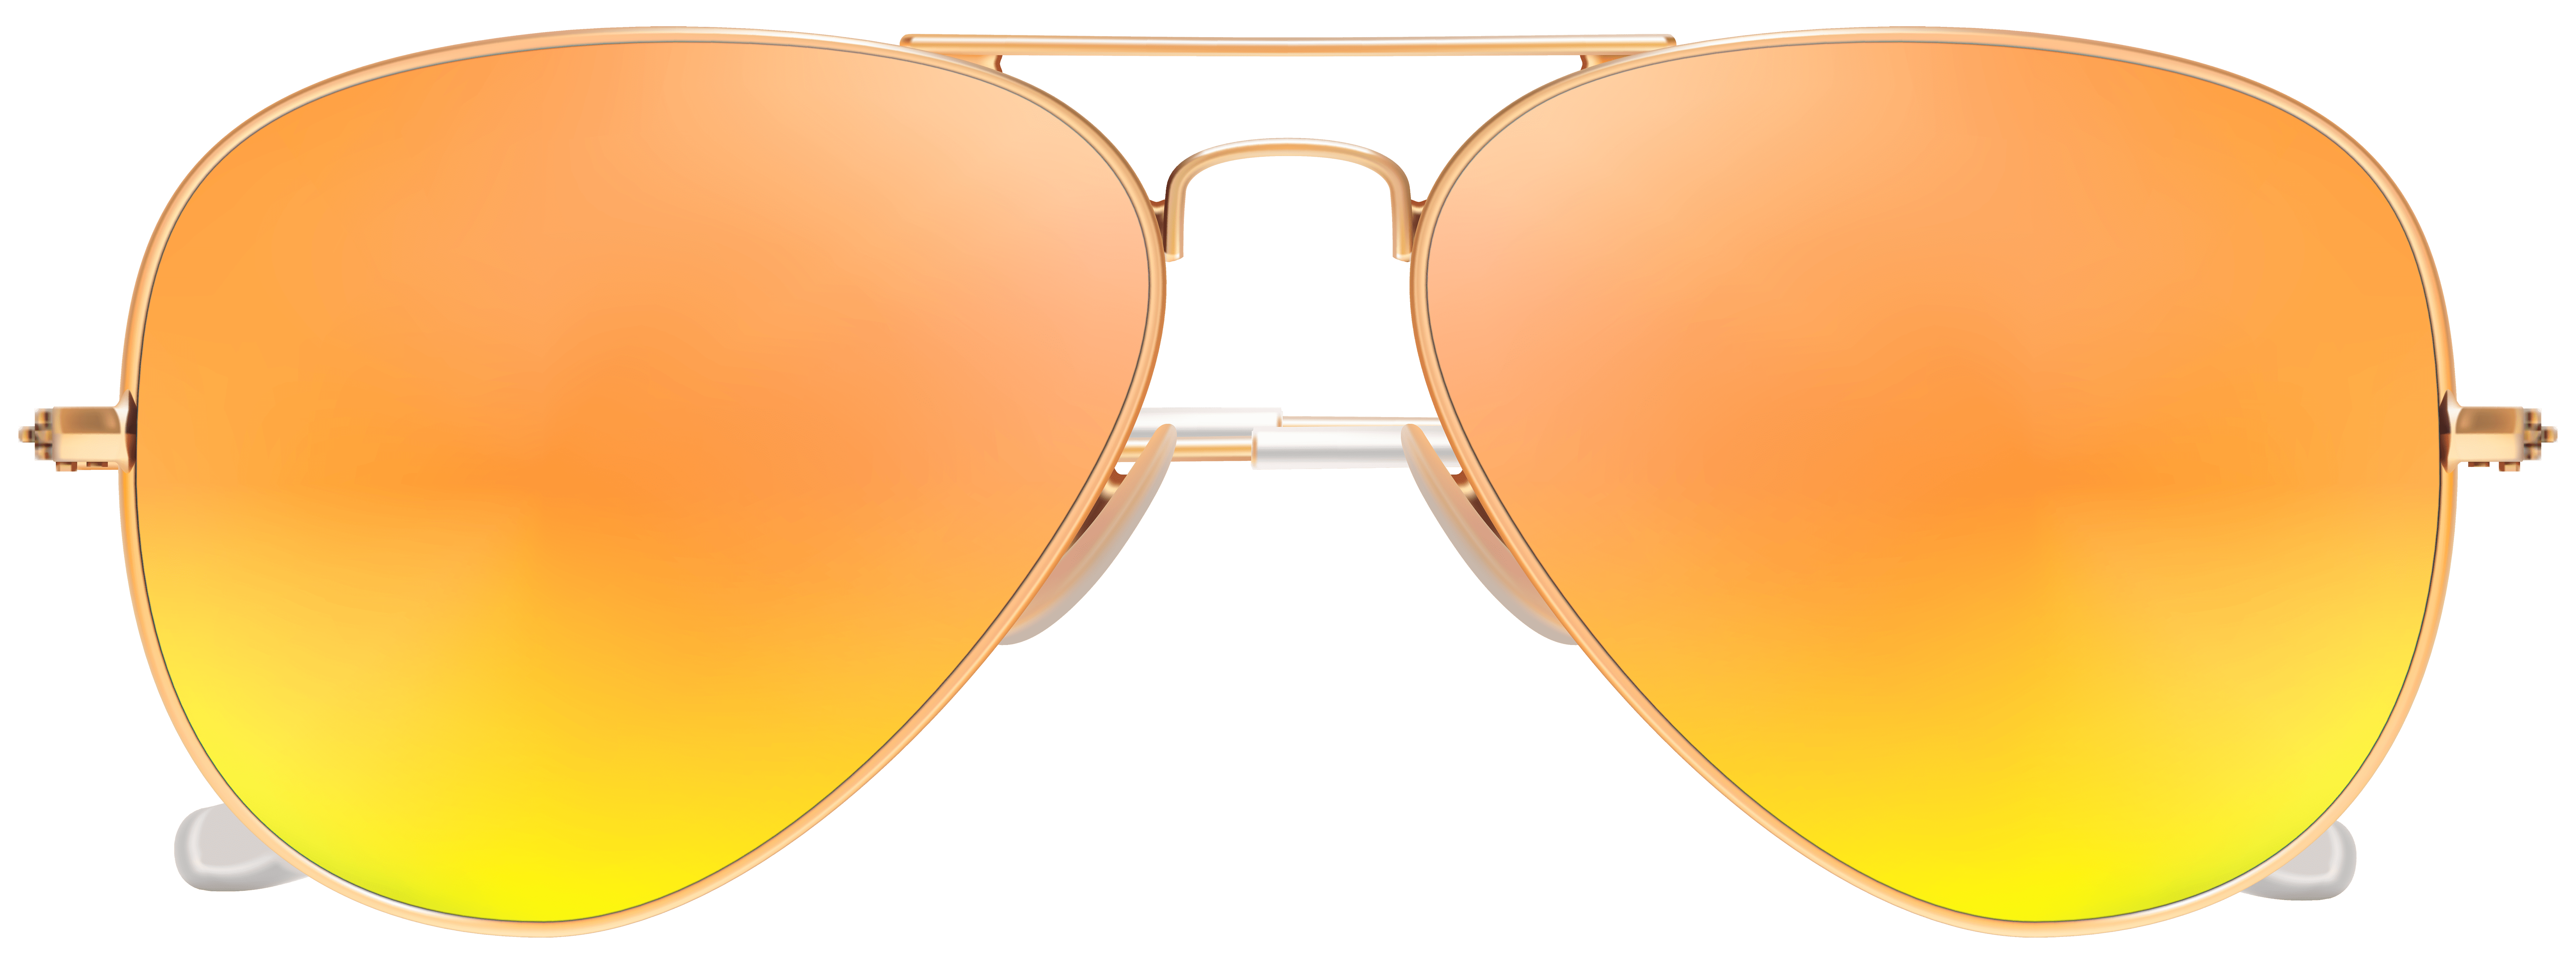 Free Yellow Sunglasses Cliparts Download Free Clip Art